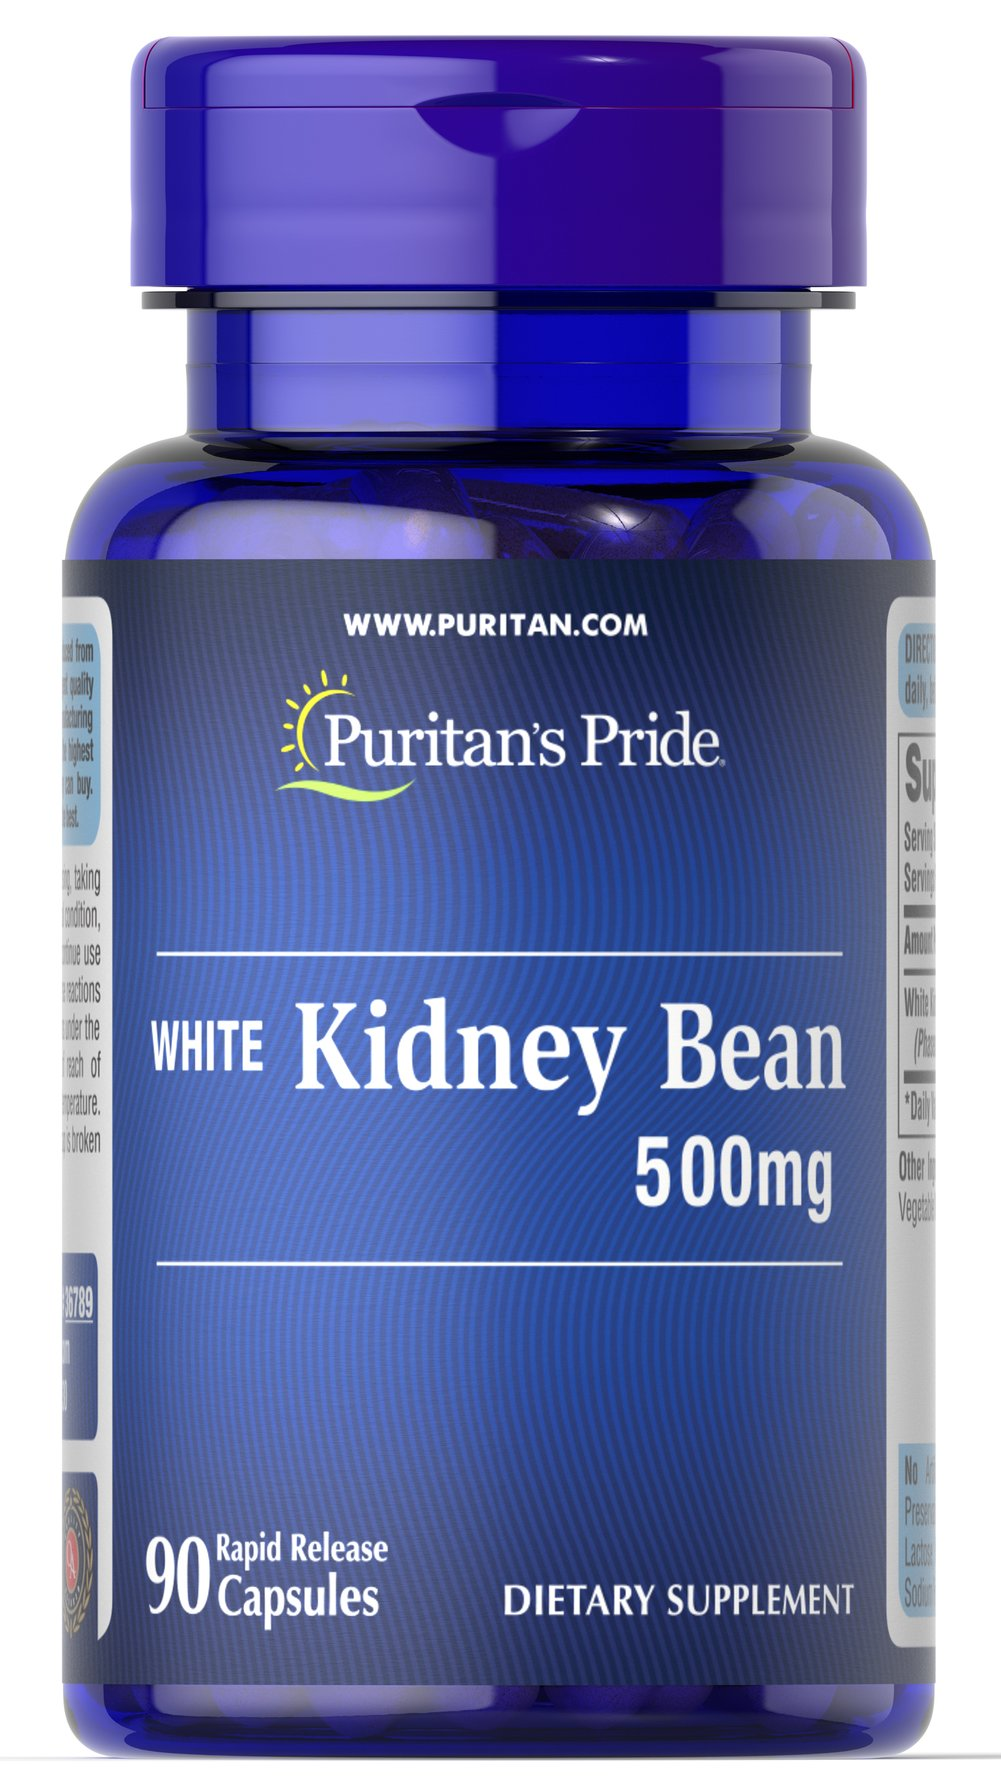 White Kidney Bean <p>White Kidney Bean (Phaseolus vulgaris) has a long history as a culinary ingredient. White Kidney Beans are a source of Vitamin B-6, iron and protein. Each serving of our white kidney bean supplement delivers 1500 mg of white kidney bean to your diet. </p><p></p> 90 Capsules 500 mg $16.79